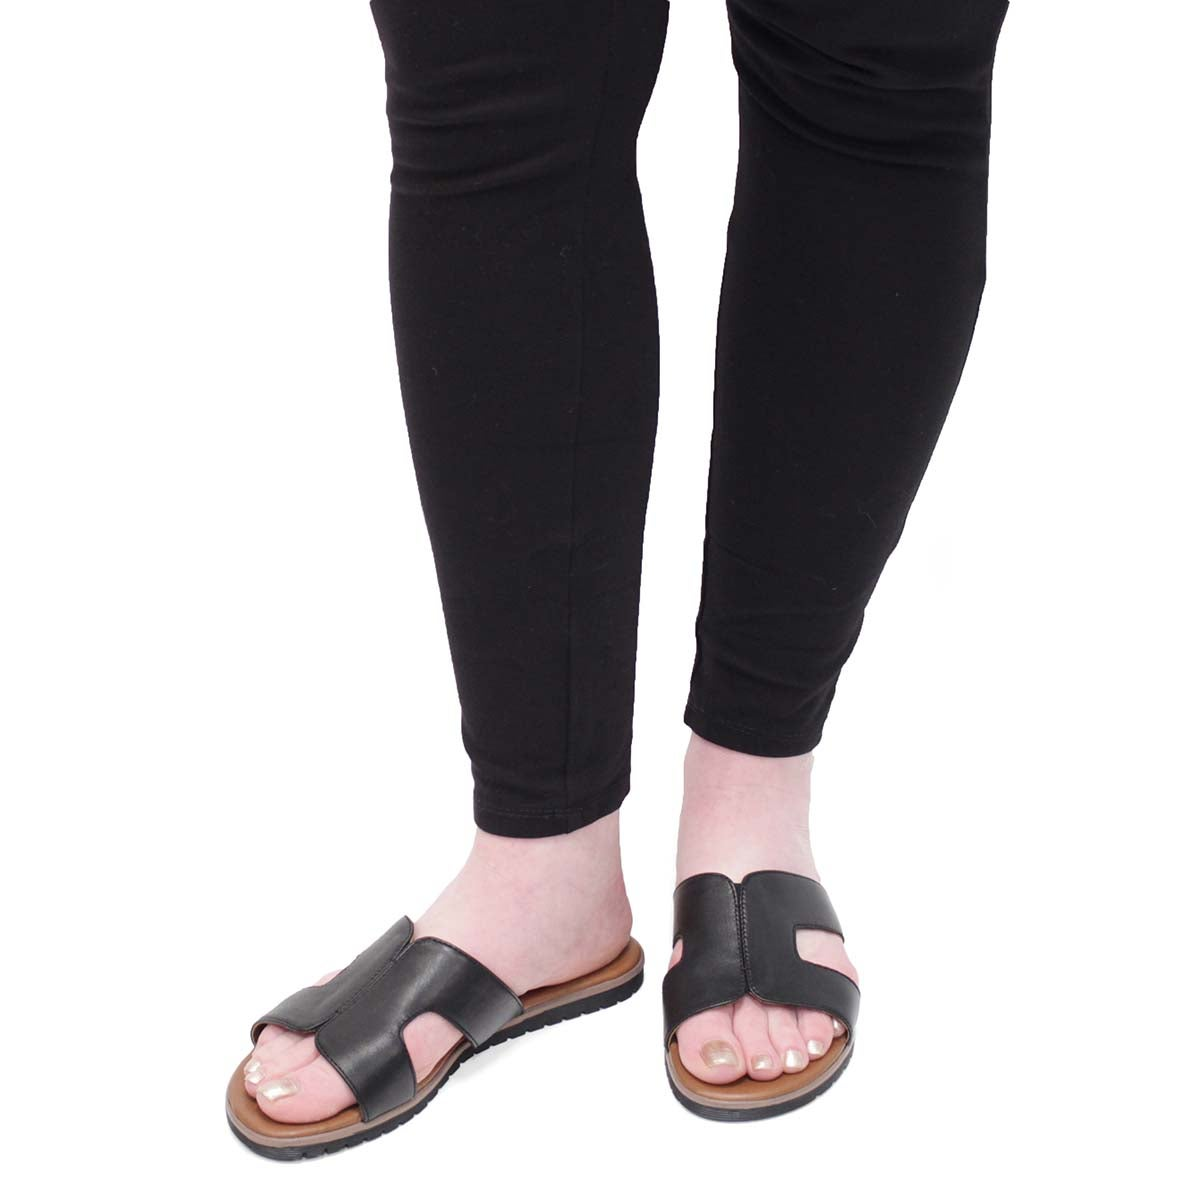 Lds Gillian black slide sandal